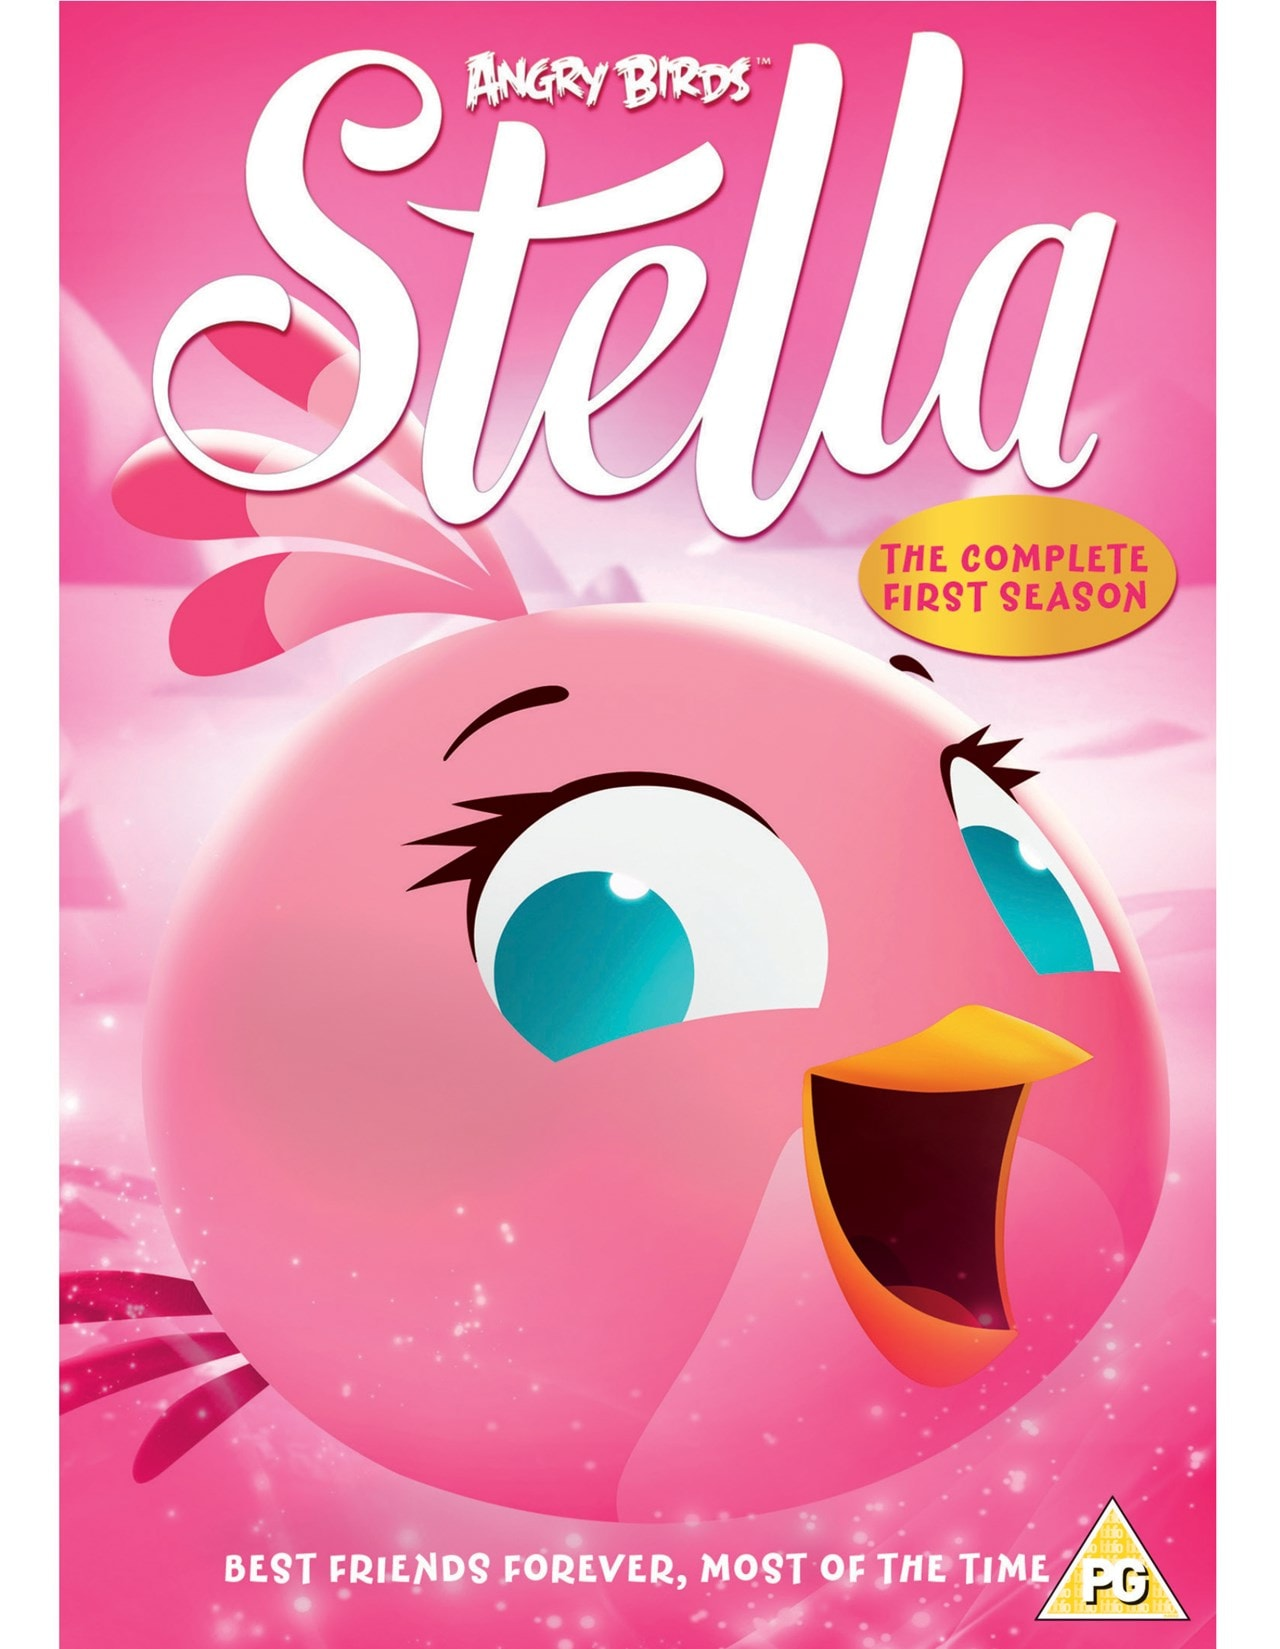 Angry Birds Stella: The Complete First Season - 1